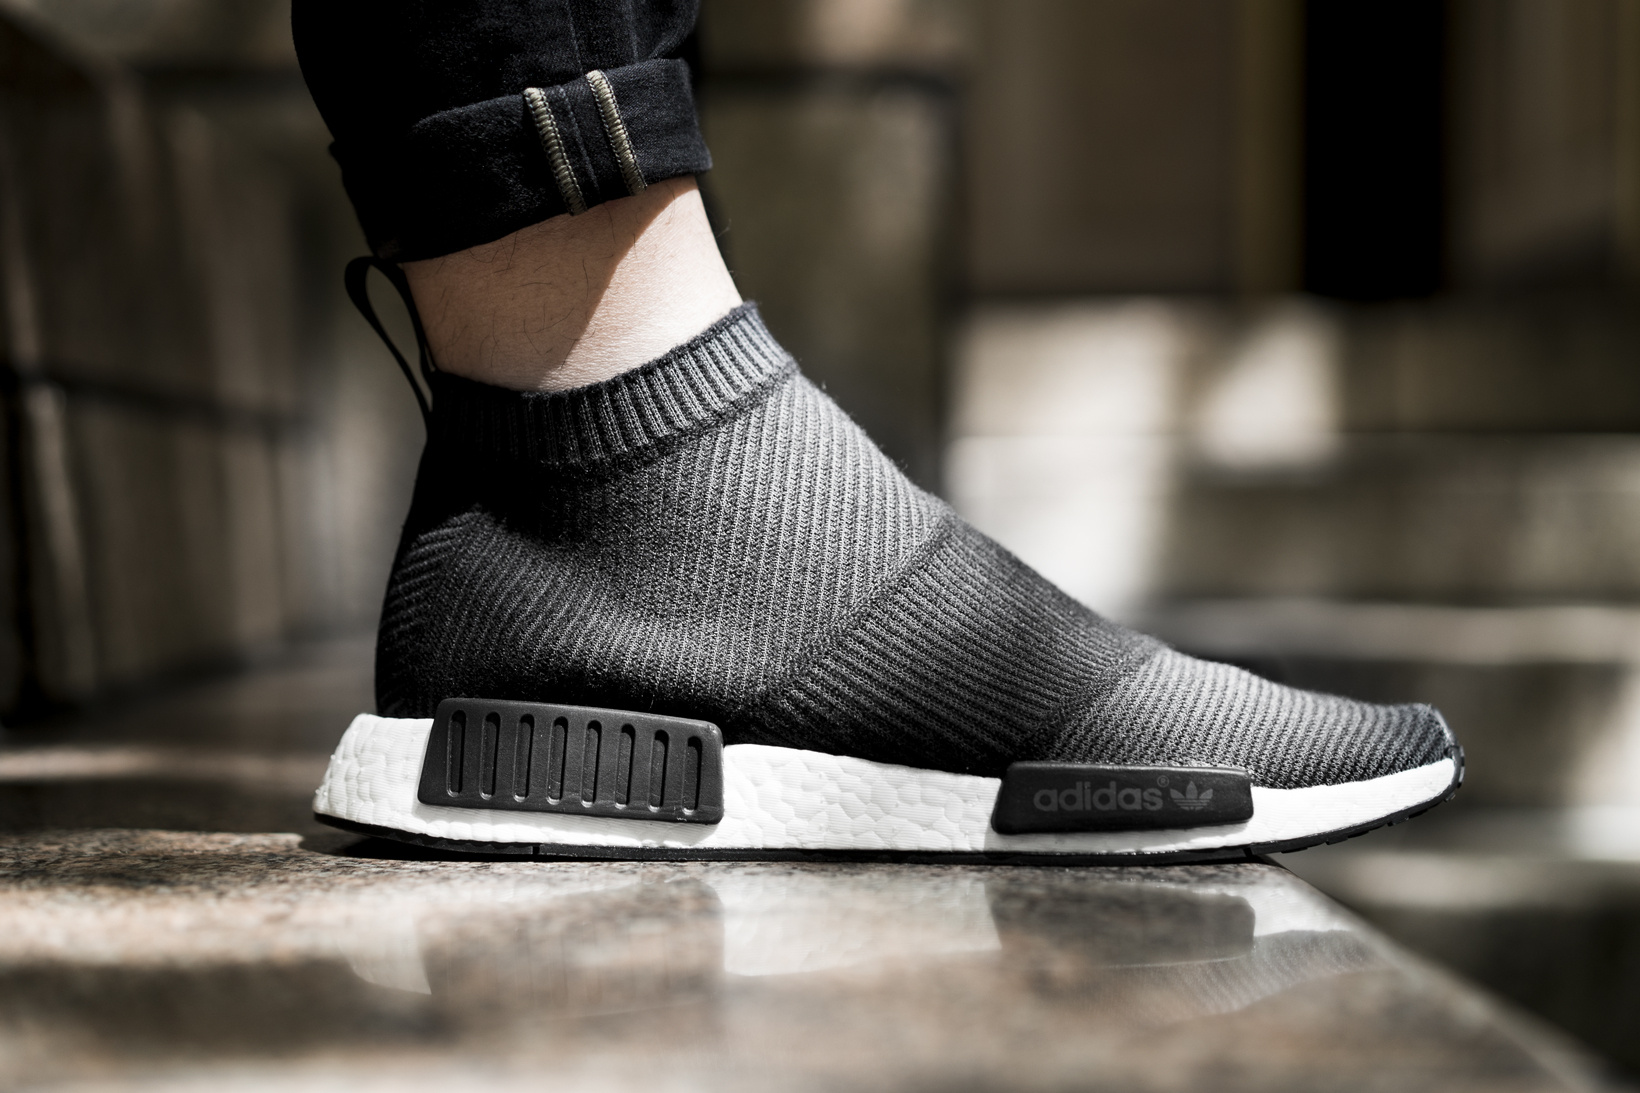 chaussures de sport e1213 81725 Adidas NMD City Sock Black White On Feet | Sole Collector